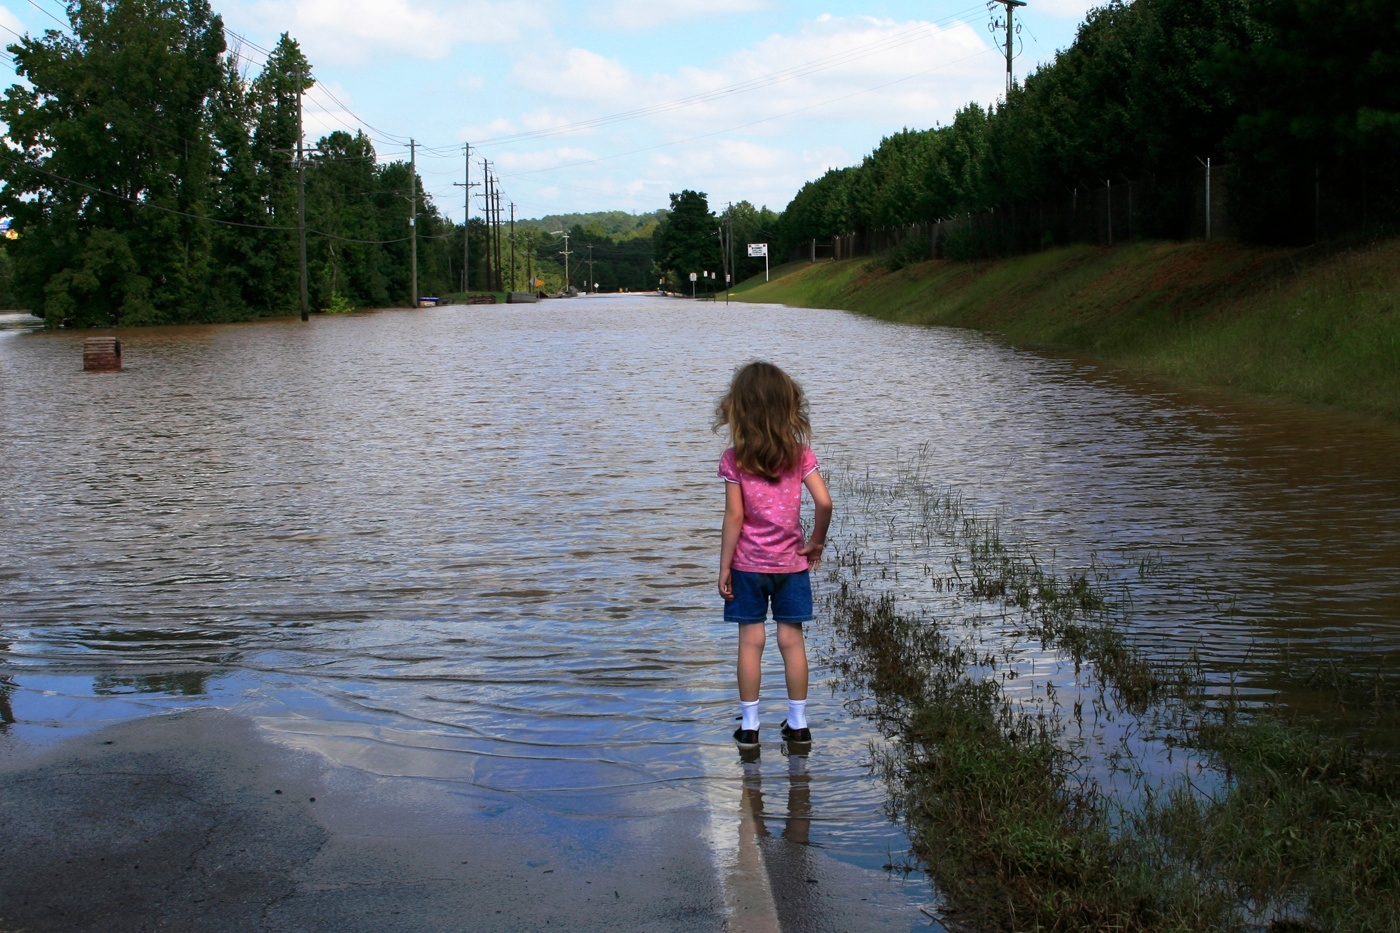 Are Children in Child Care Safe During Disasters?